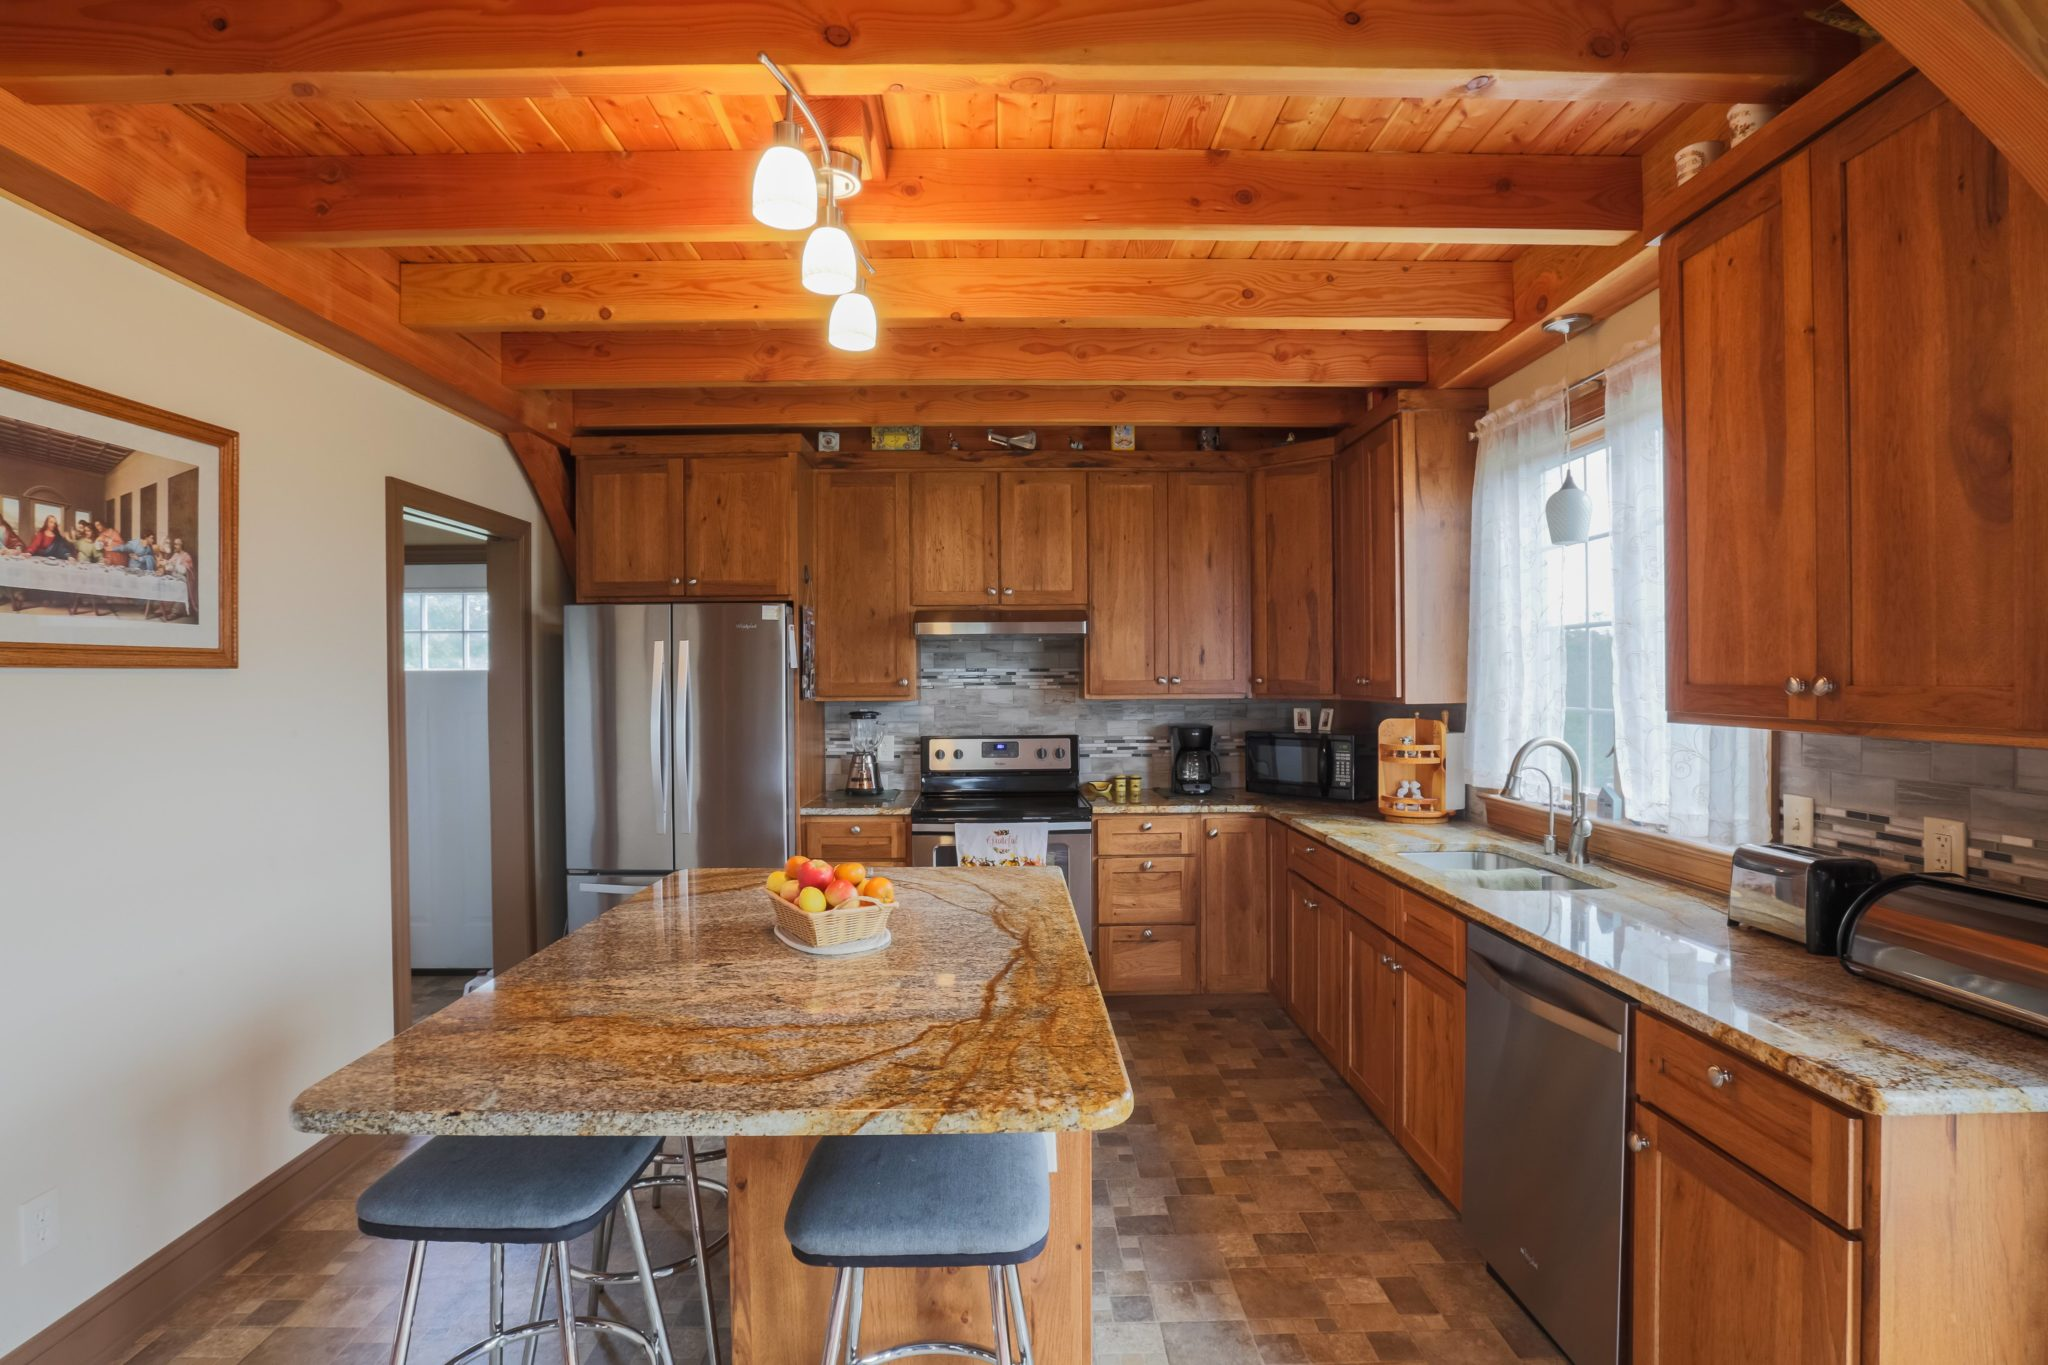 The Benefits of SIPs in Timber Frame Homes